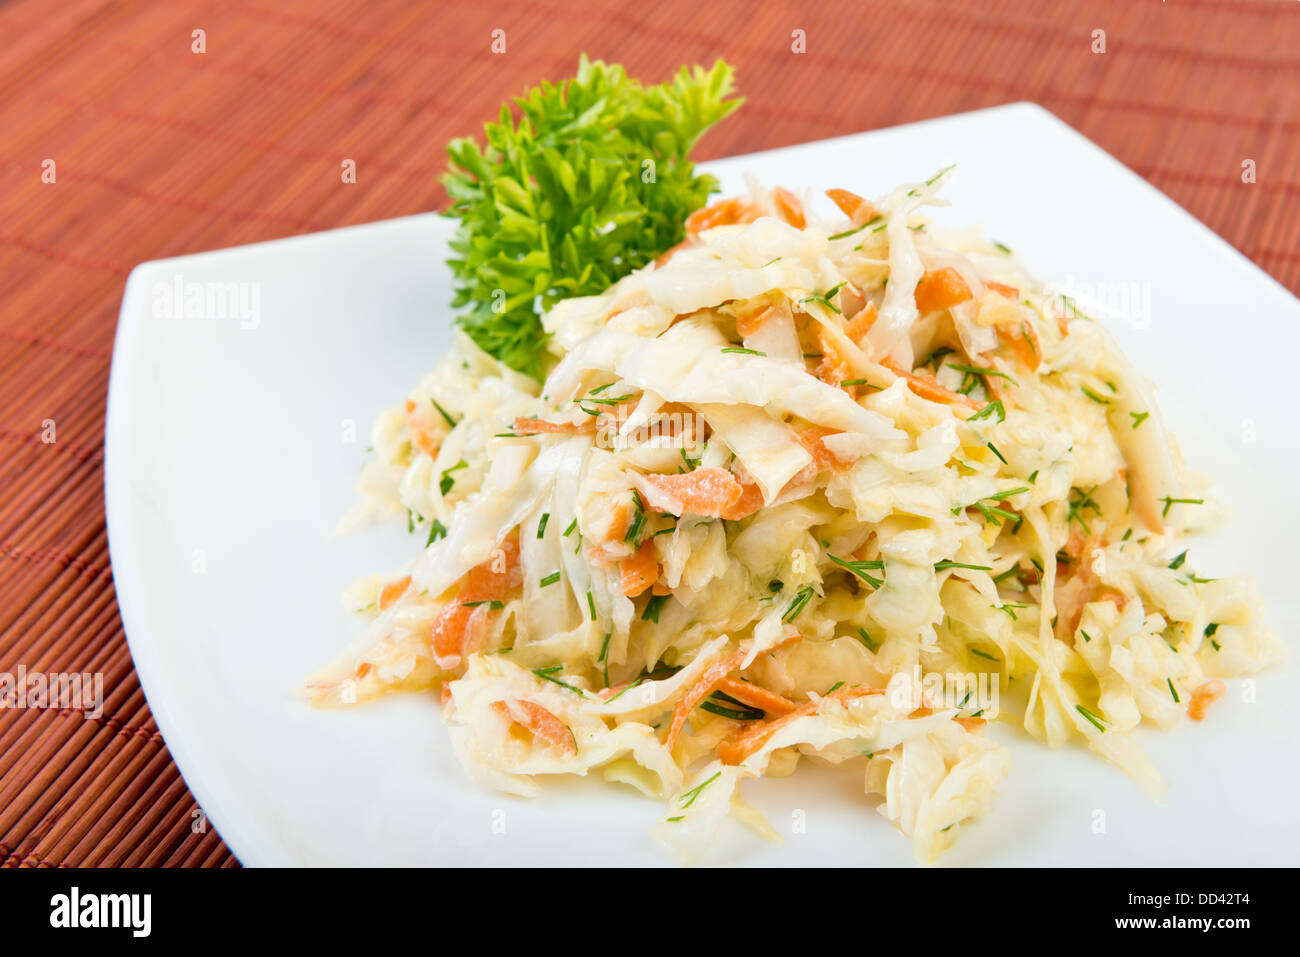 Low fat vegetable salad coleslaw (cabbage, carrot, dill, mayonnaise) on plate at restaurant table - Stock Image